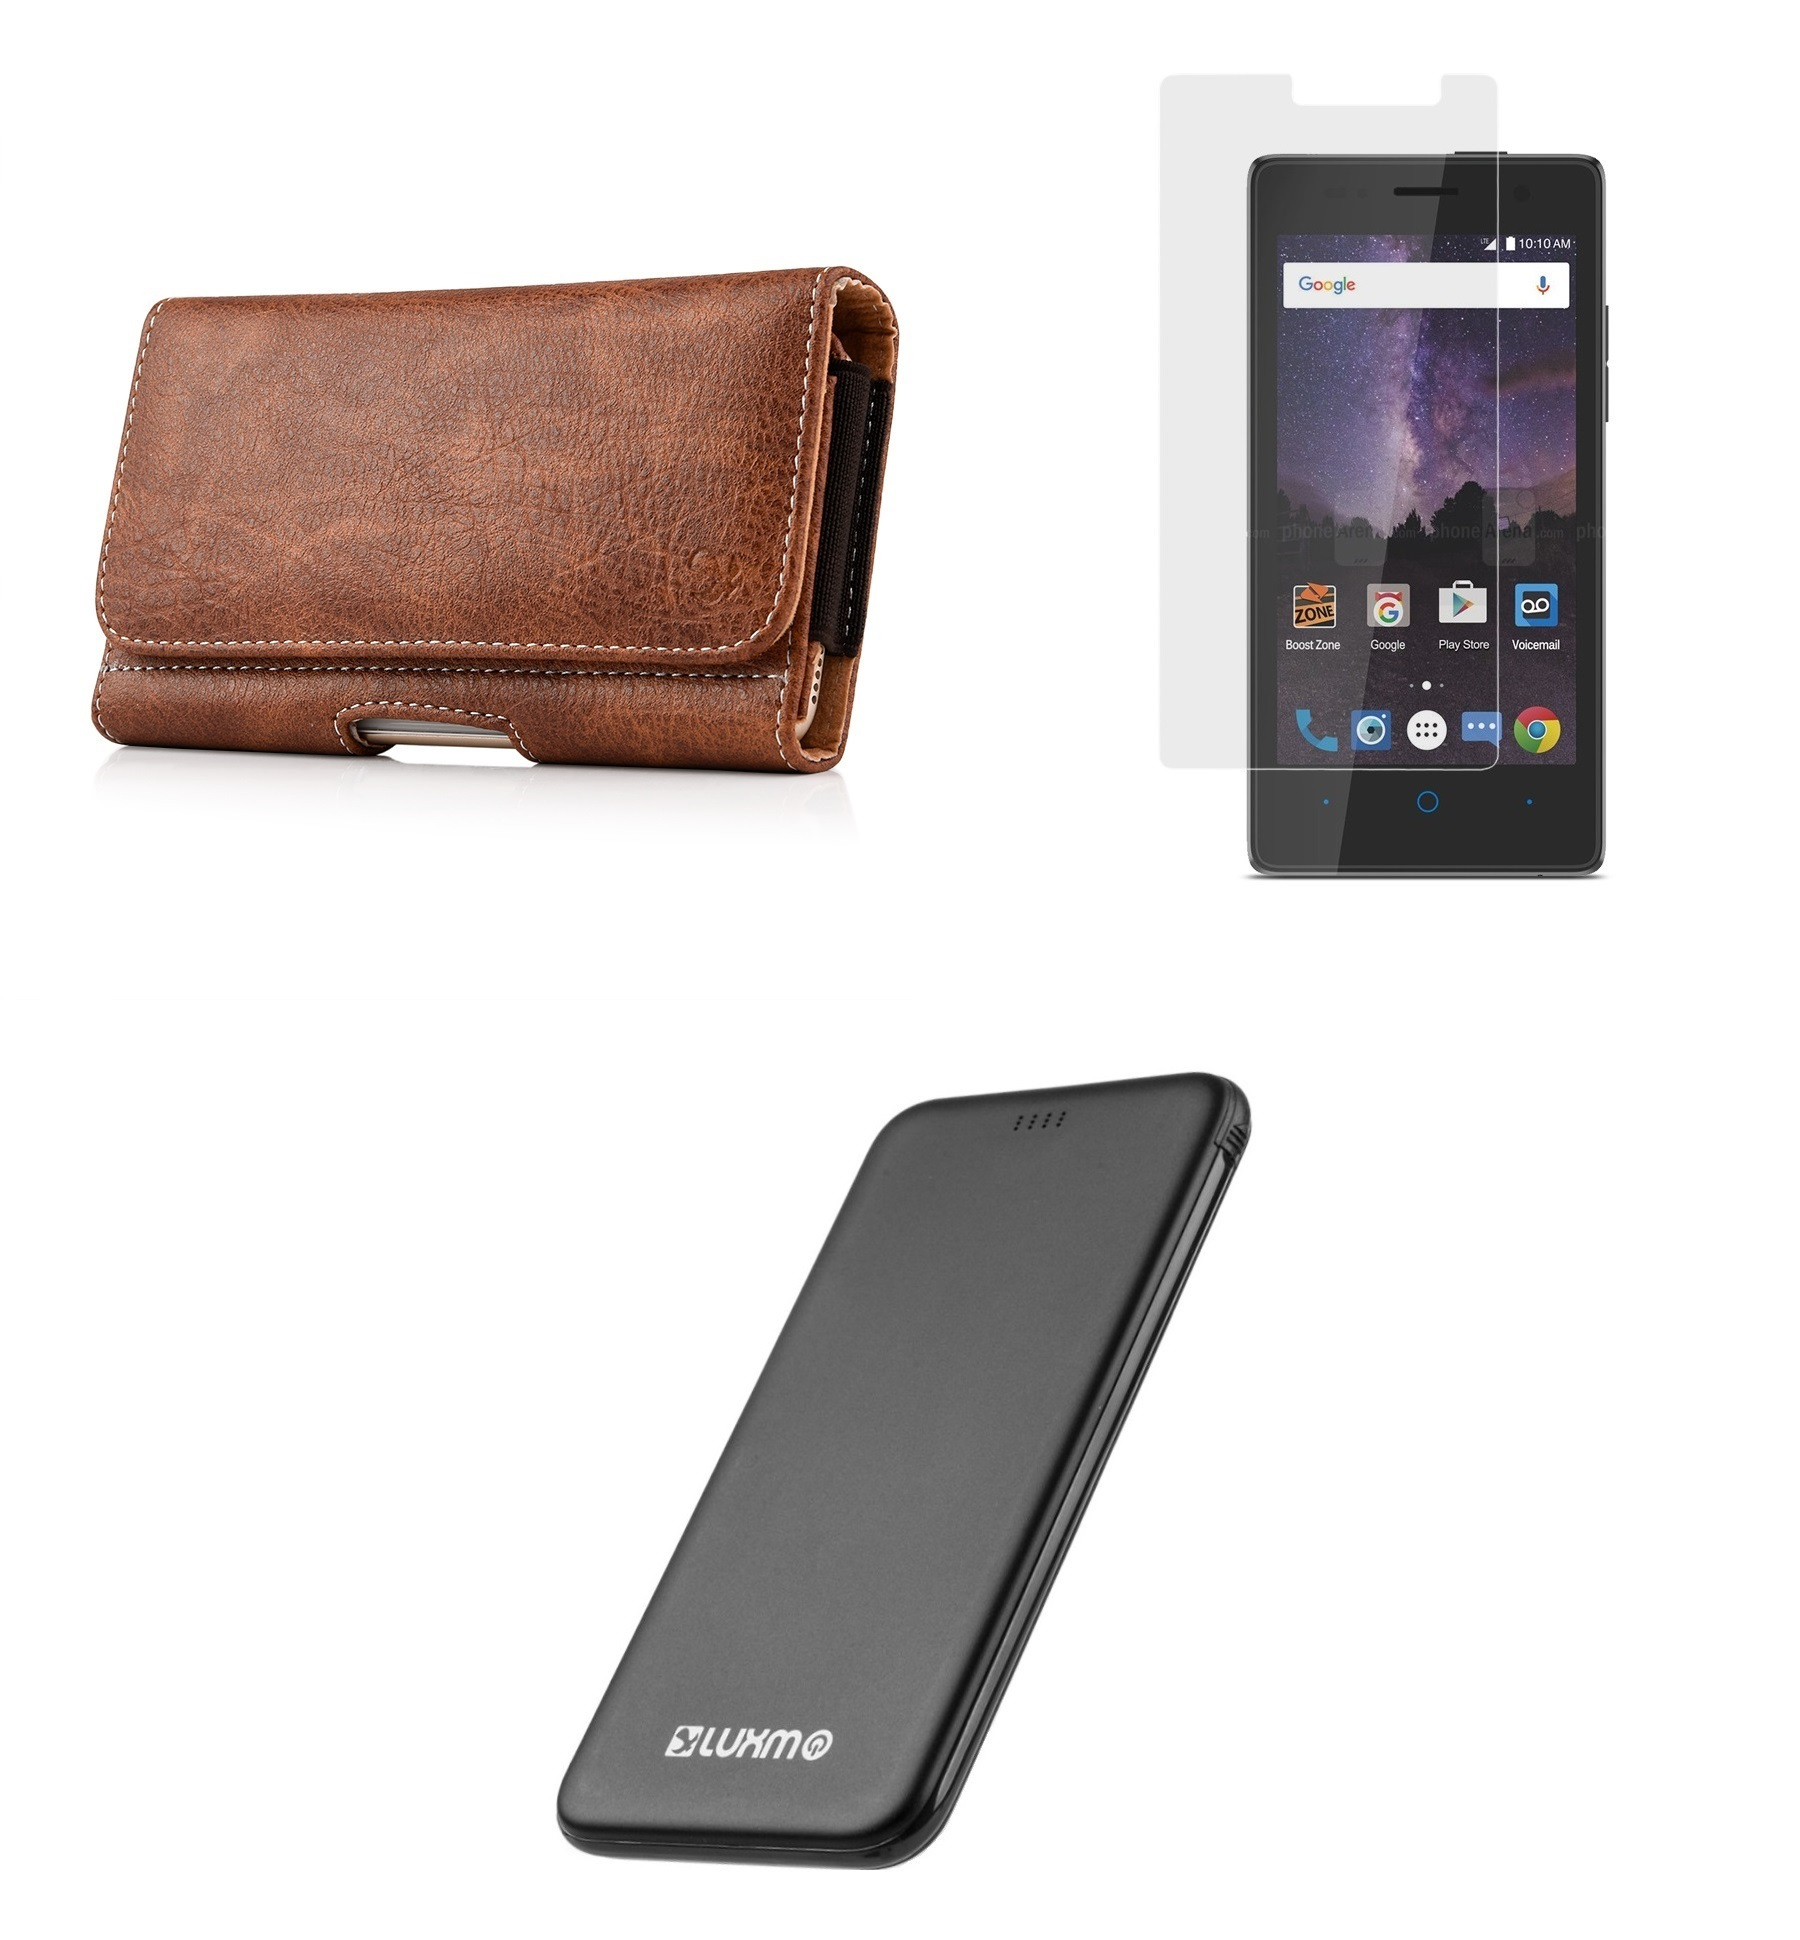 ZTE Majesty Pro LTE / Pro Plus - Bundle: Executive PU Leather Holster Wallet Carrying Case (Card Slots | Coin Holder), Screen Protector, 5000mAh Ultra Slim Power Bank and Atom LED